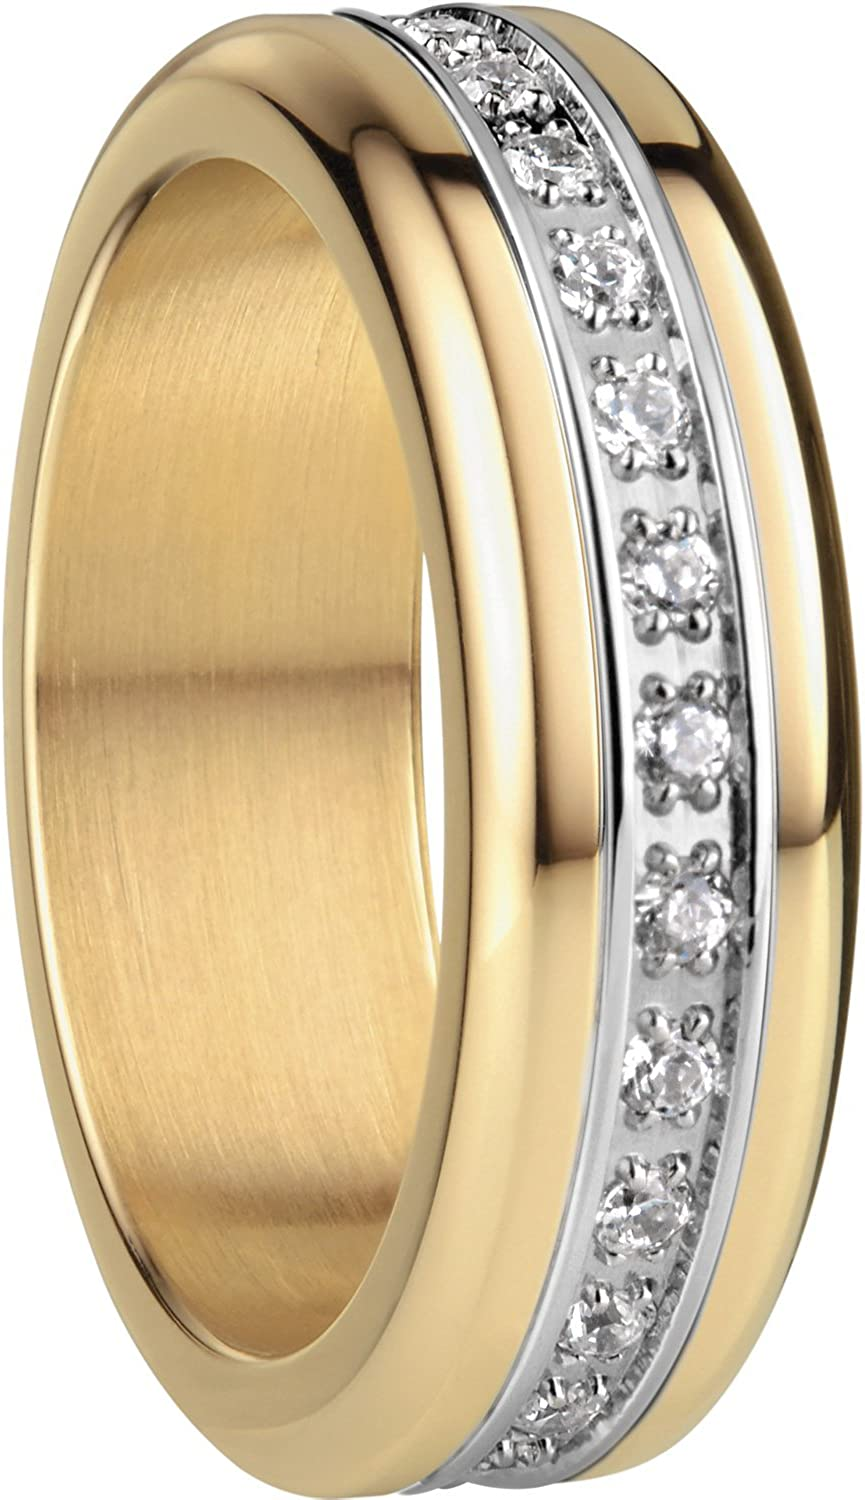 BERING Women's Ring Combination Interchangeable Mix -Bombay. New life M Challenge the lowest price of Japan